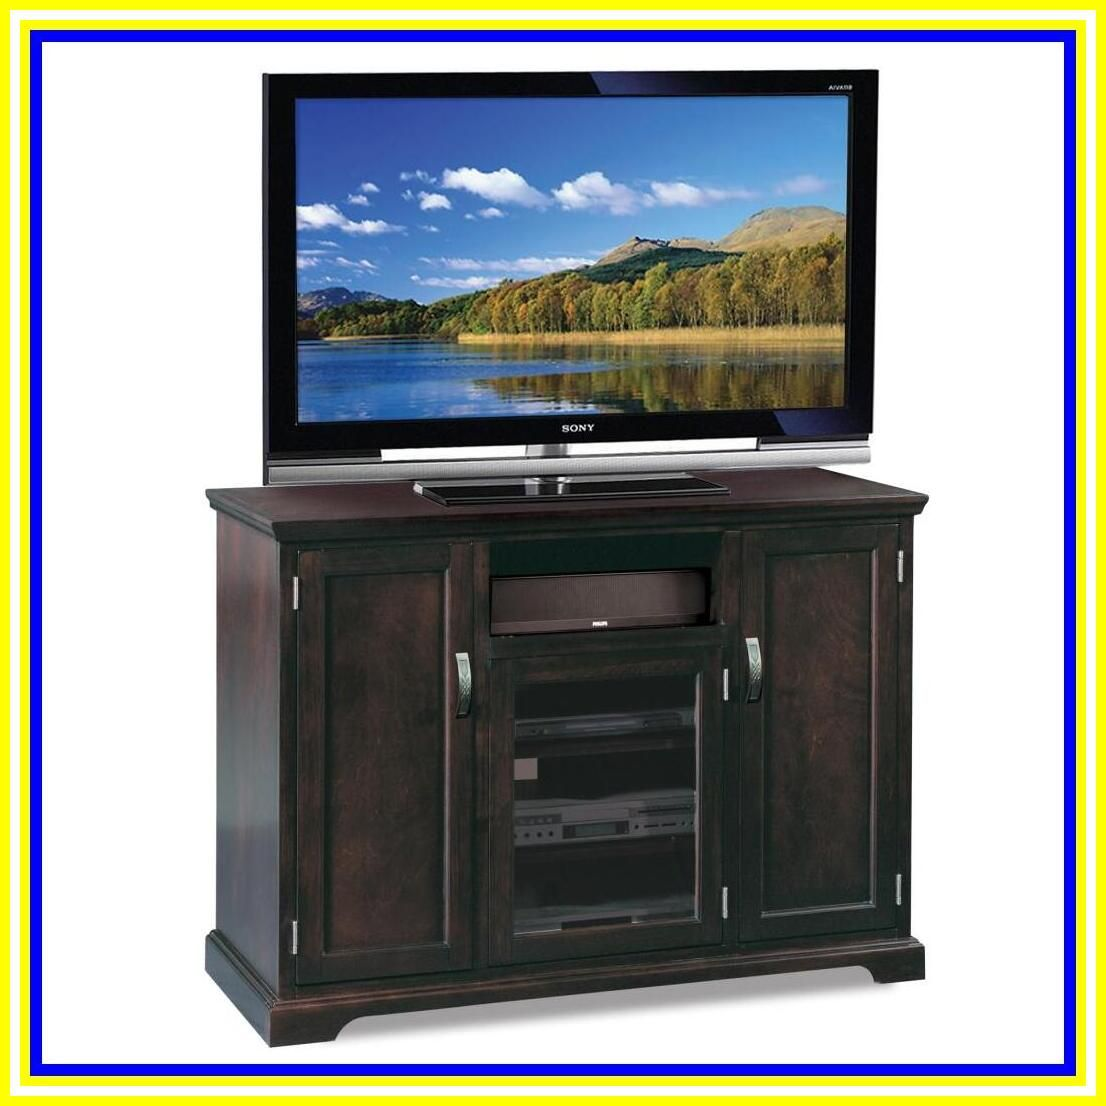 48 Reference Of 60 Inch White Corner Tv Stand In 2020 Tall Corner Tv Stand Corner Tv Stand Corner Tv